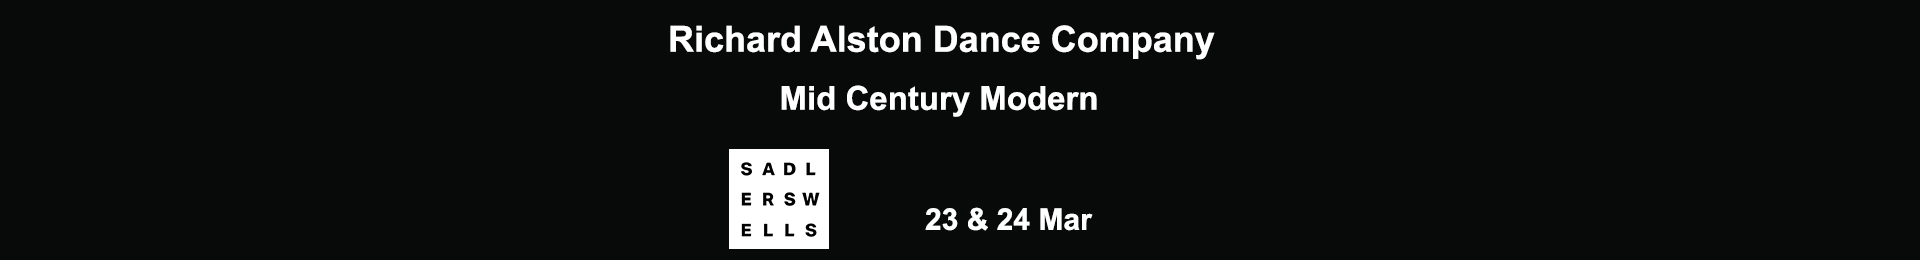 Richard Alston Dance Company — Mid Century Modern